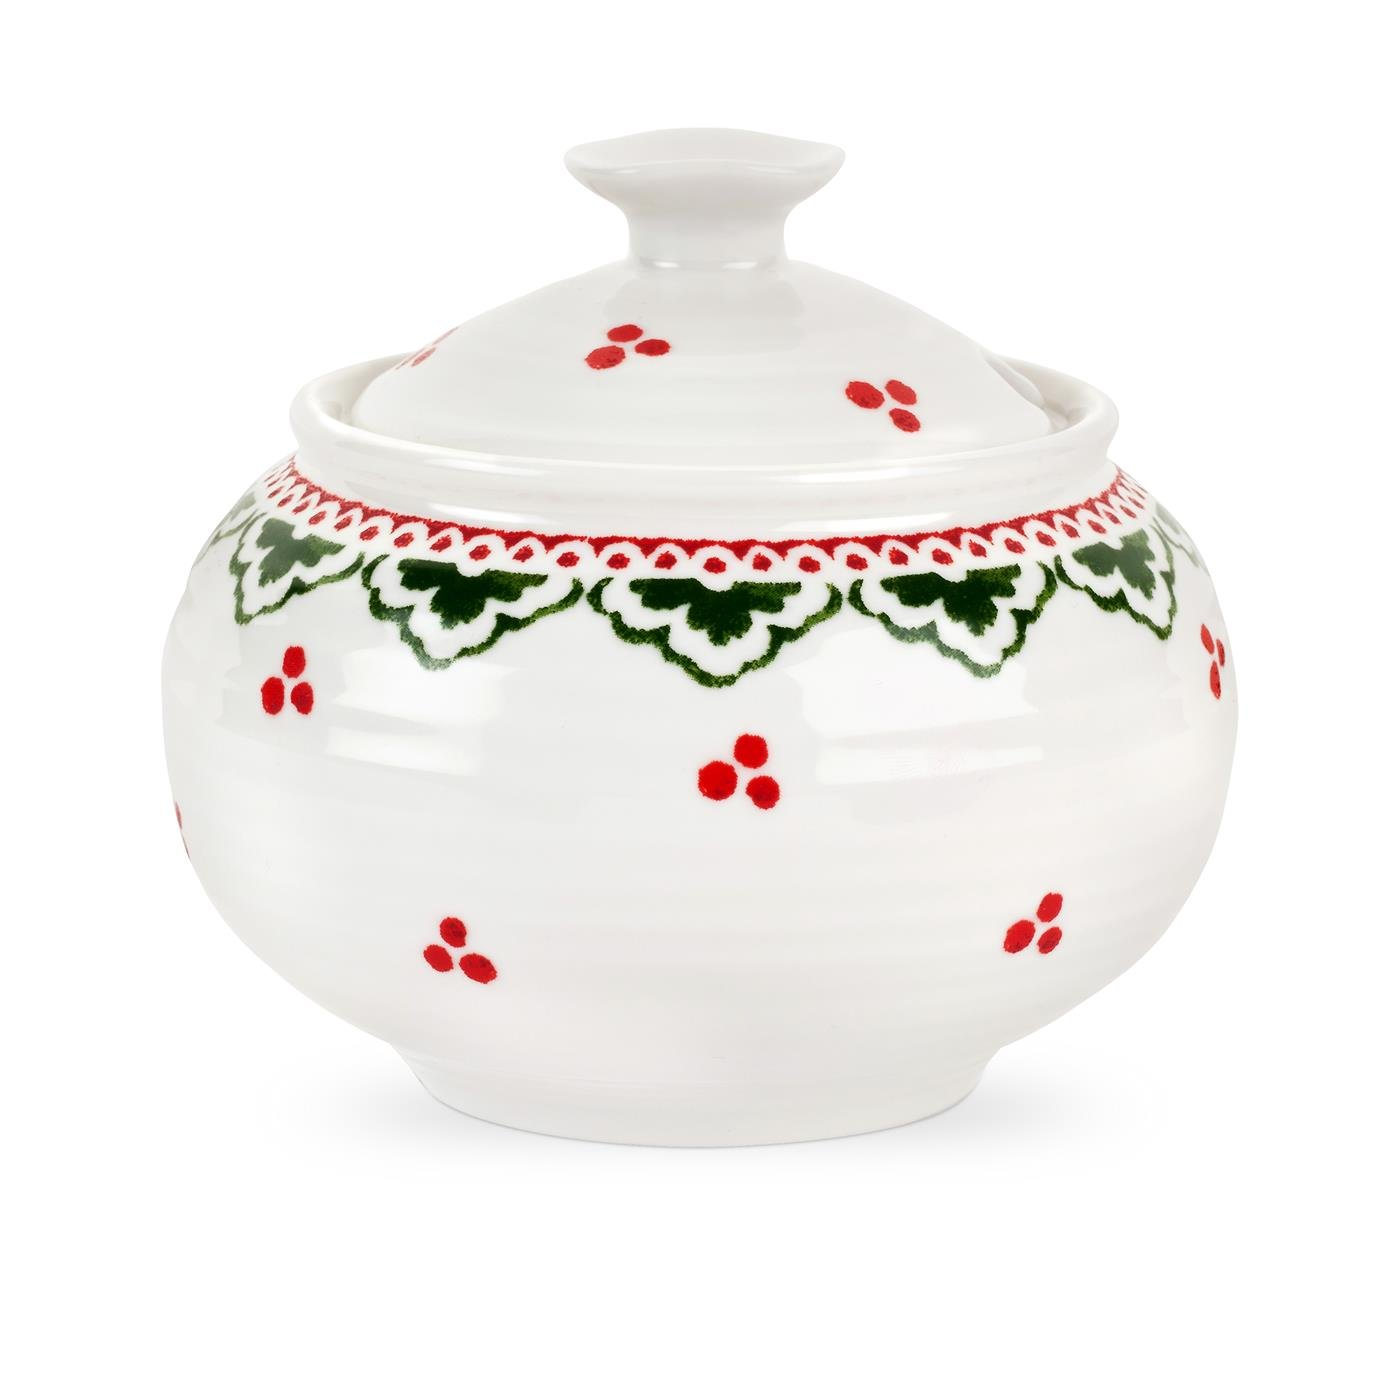 Sophie Conran (For Portmeirion) Christmas 11oz Covered Sugar Dish - Sugarplum Fairy CPXB76829-XG